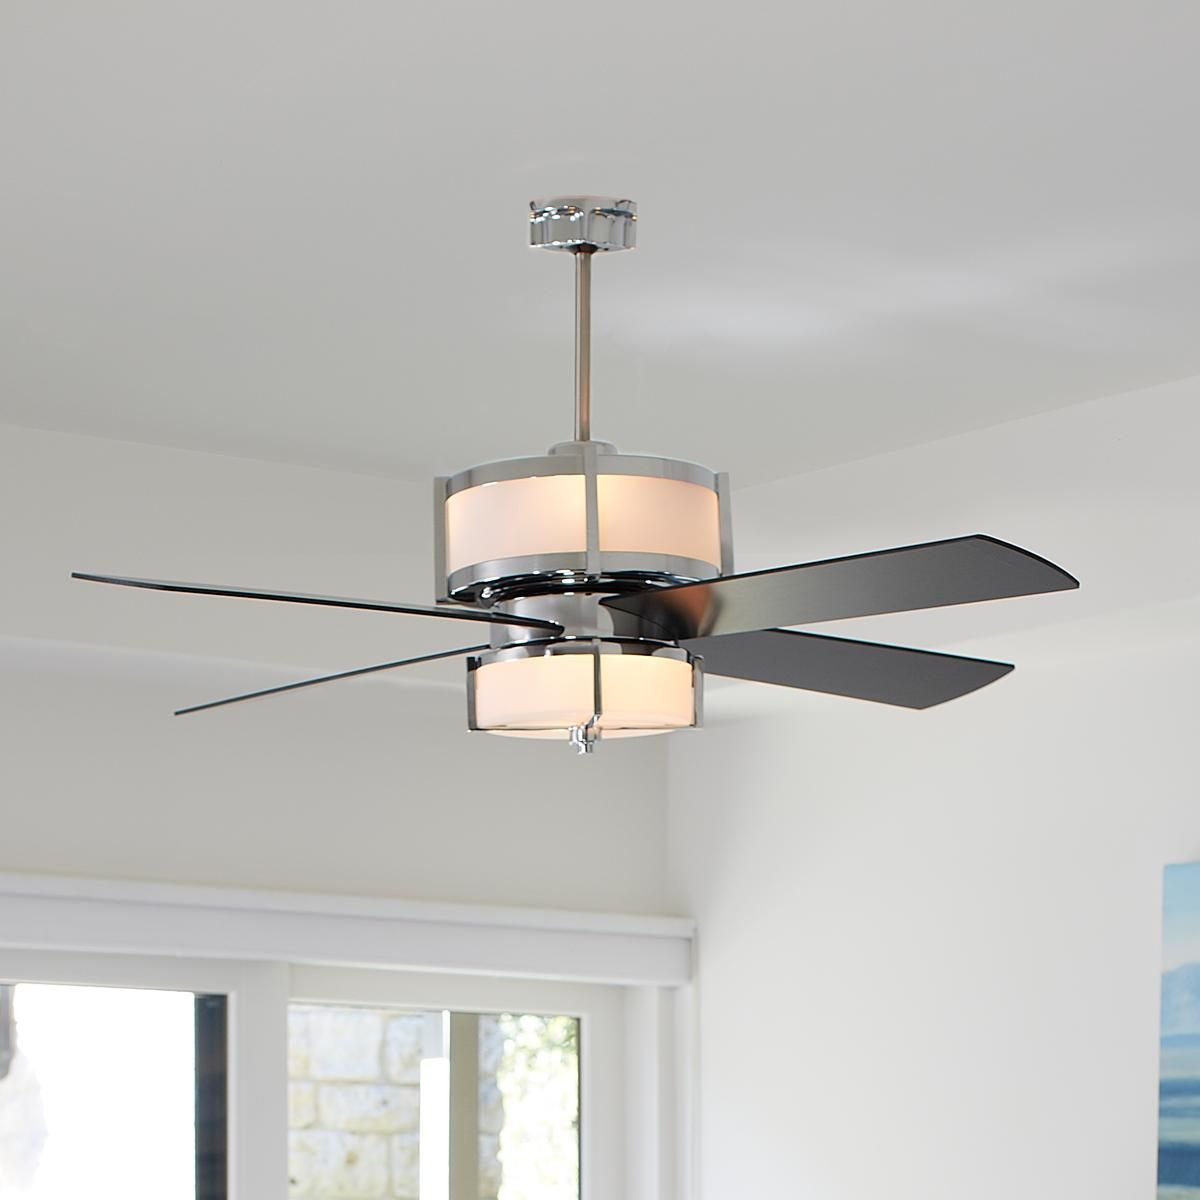 Upscale Modern Ceiling Fan 2 Finishes Modern Ceiling Fan